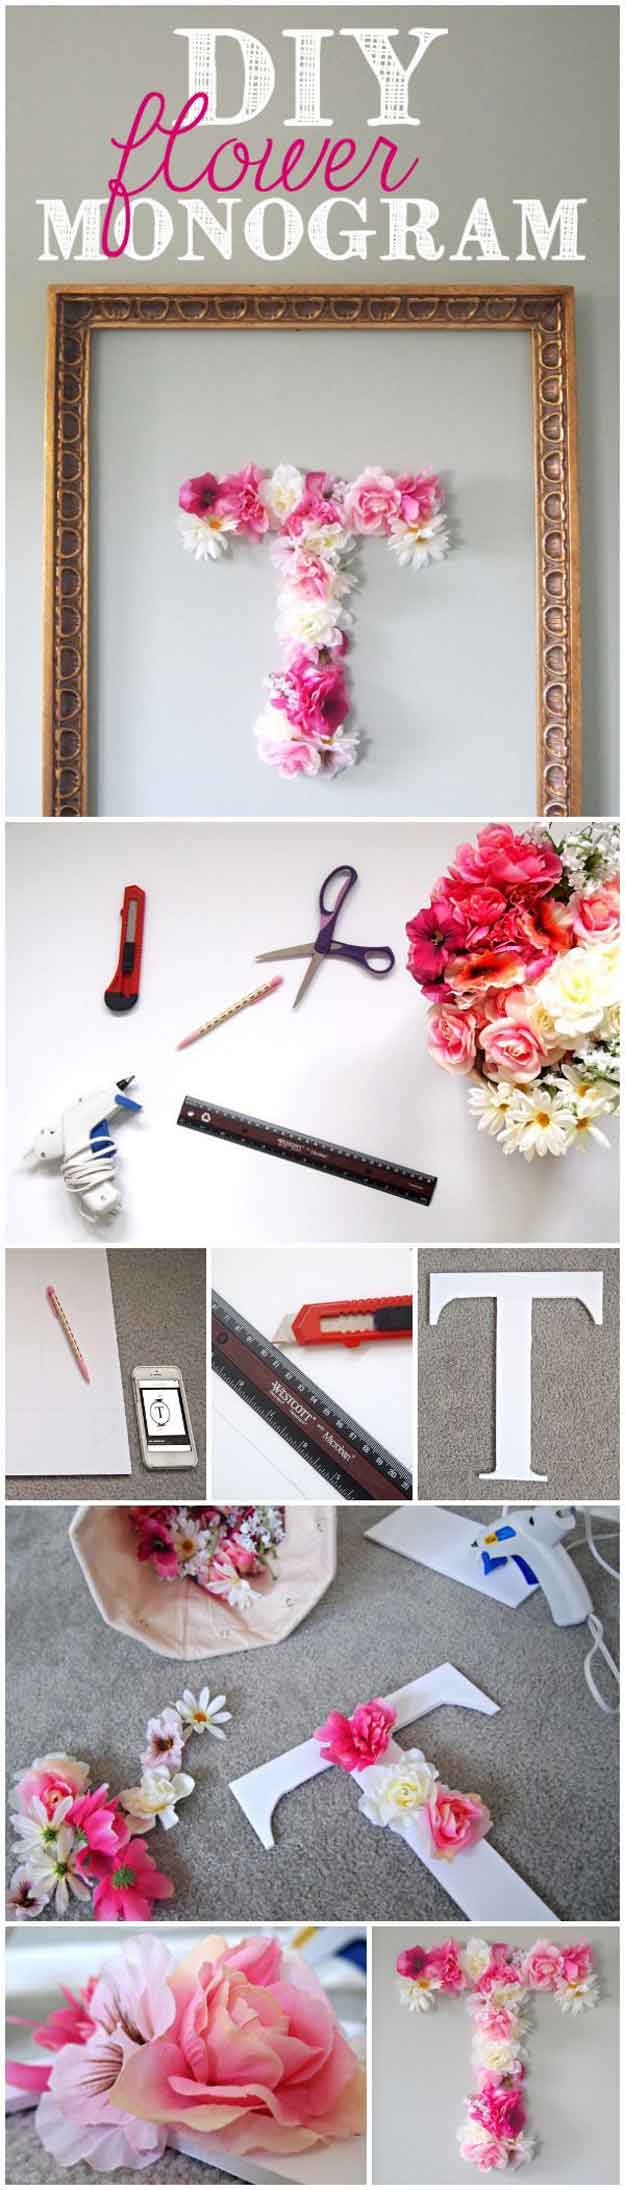 cute diy room decor ideas for teens diy bedroom projects for teenagers diy flower - Cute Decorating Ideas For Bedrooms